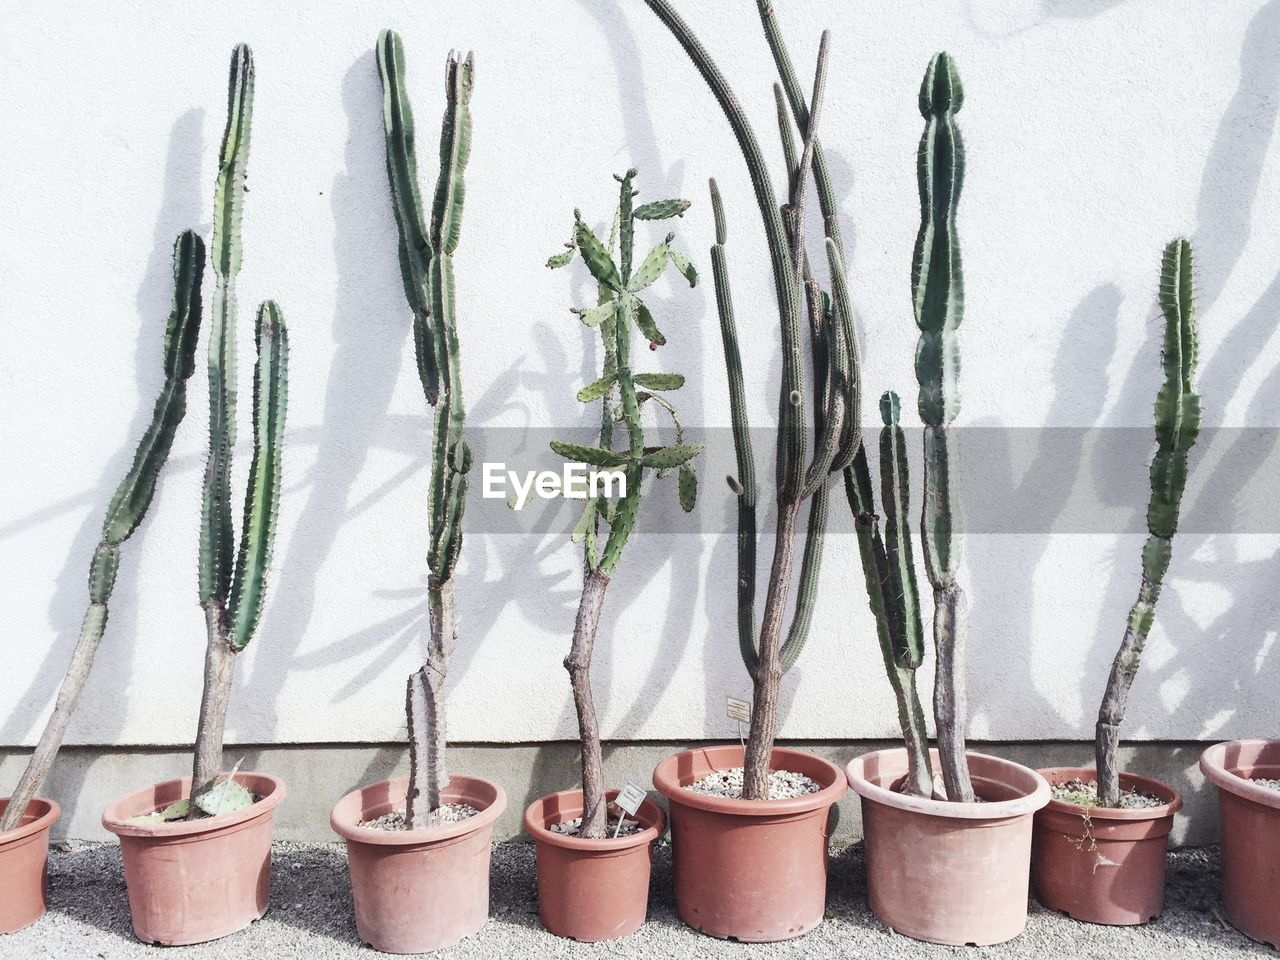 Sunlight Falling On Potted Cacti Arranged By White Wall